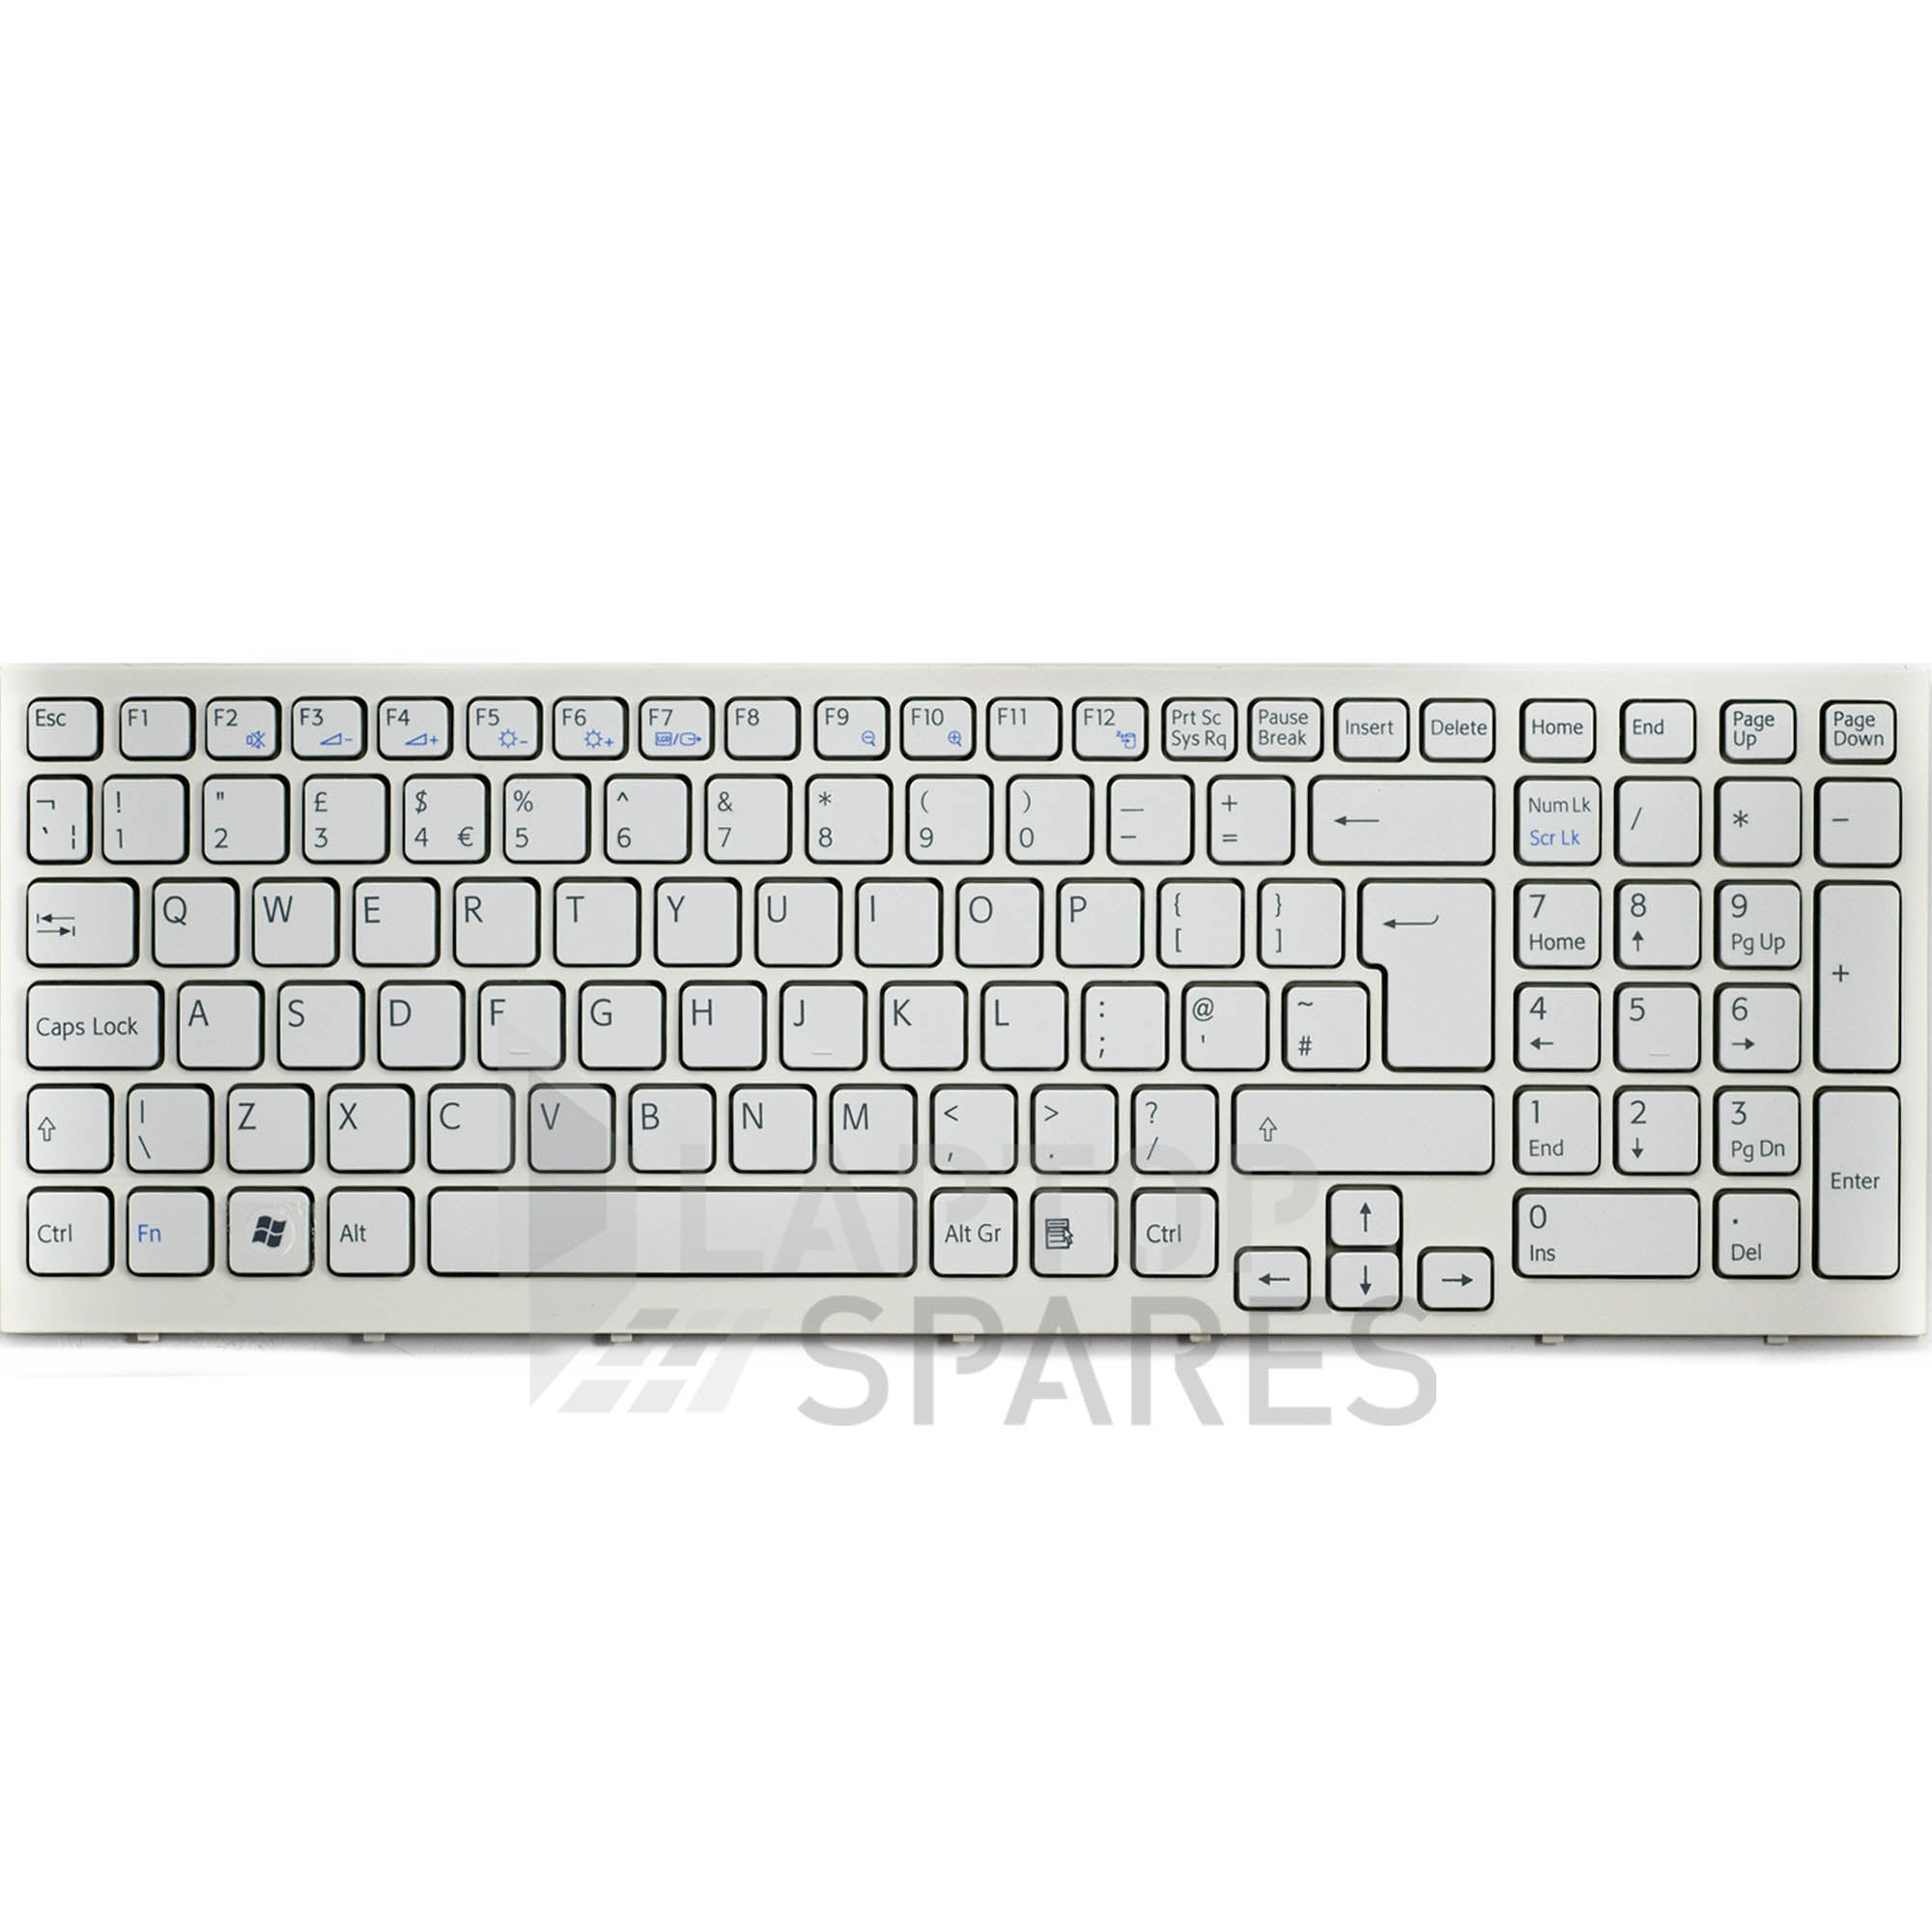 Sony Vaio VPC EB With Frame 148793411 Laptop Keyboard